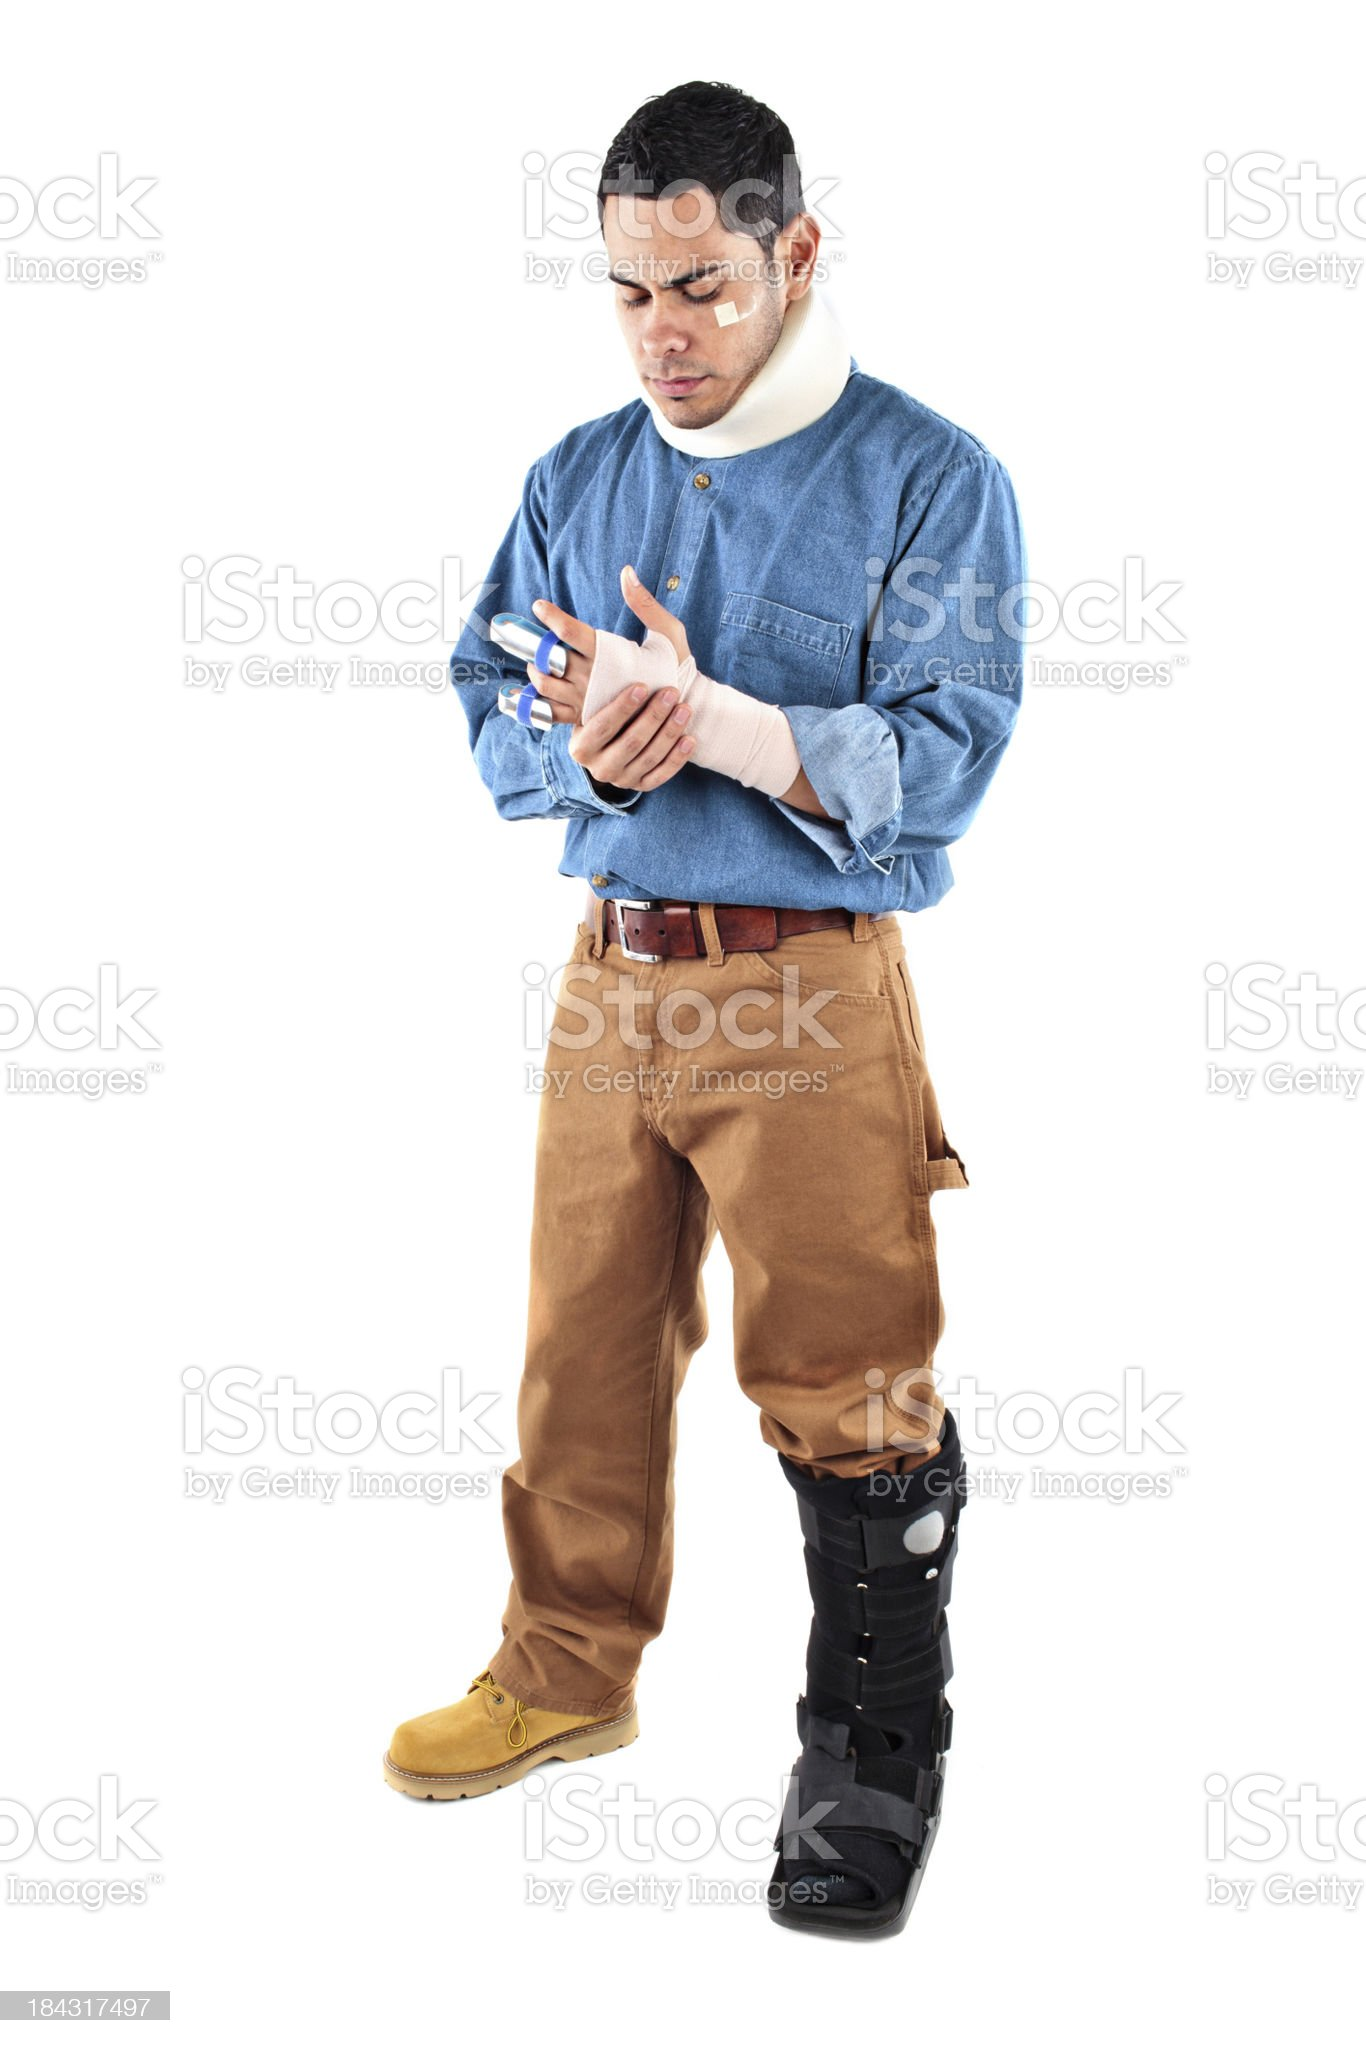 Injured male worker holding his hand royalty-free stock photo